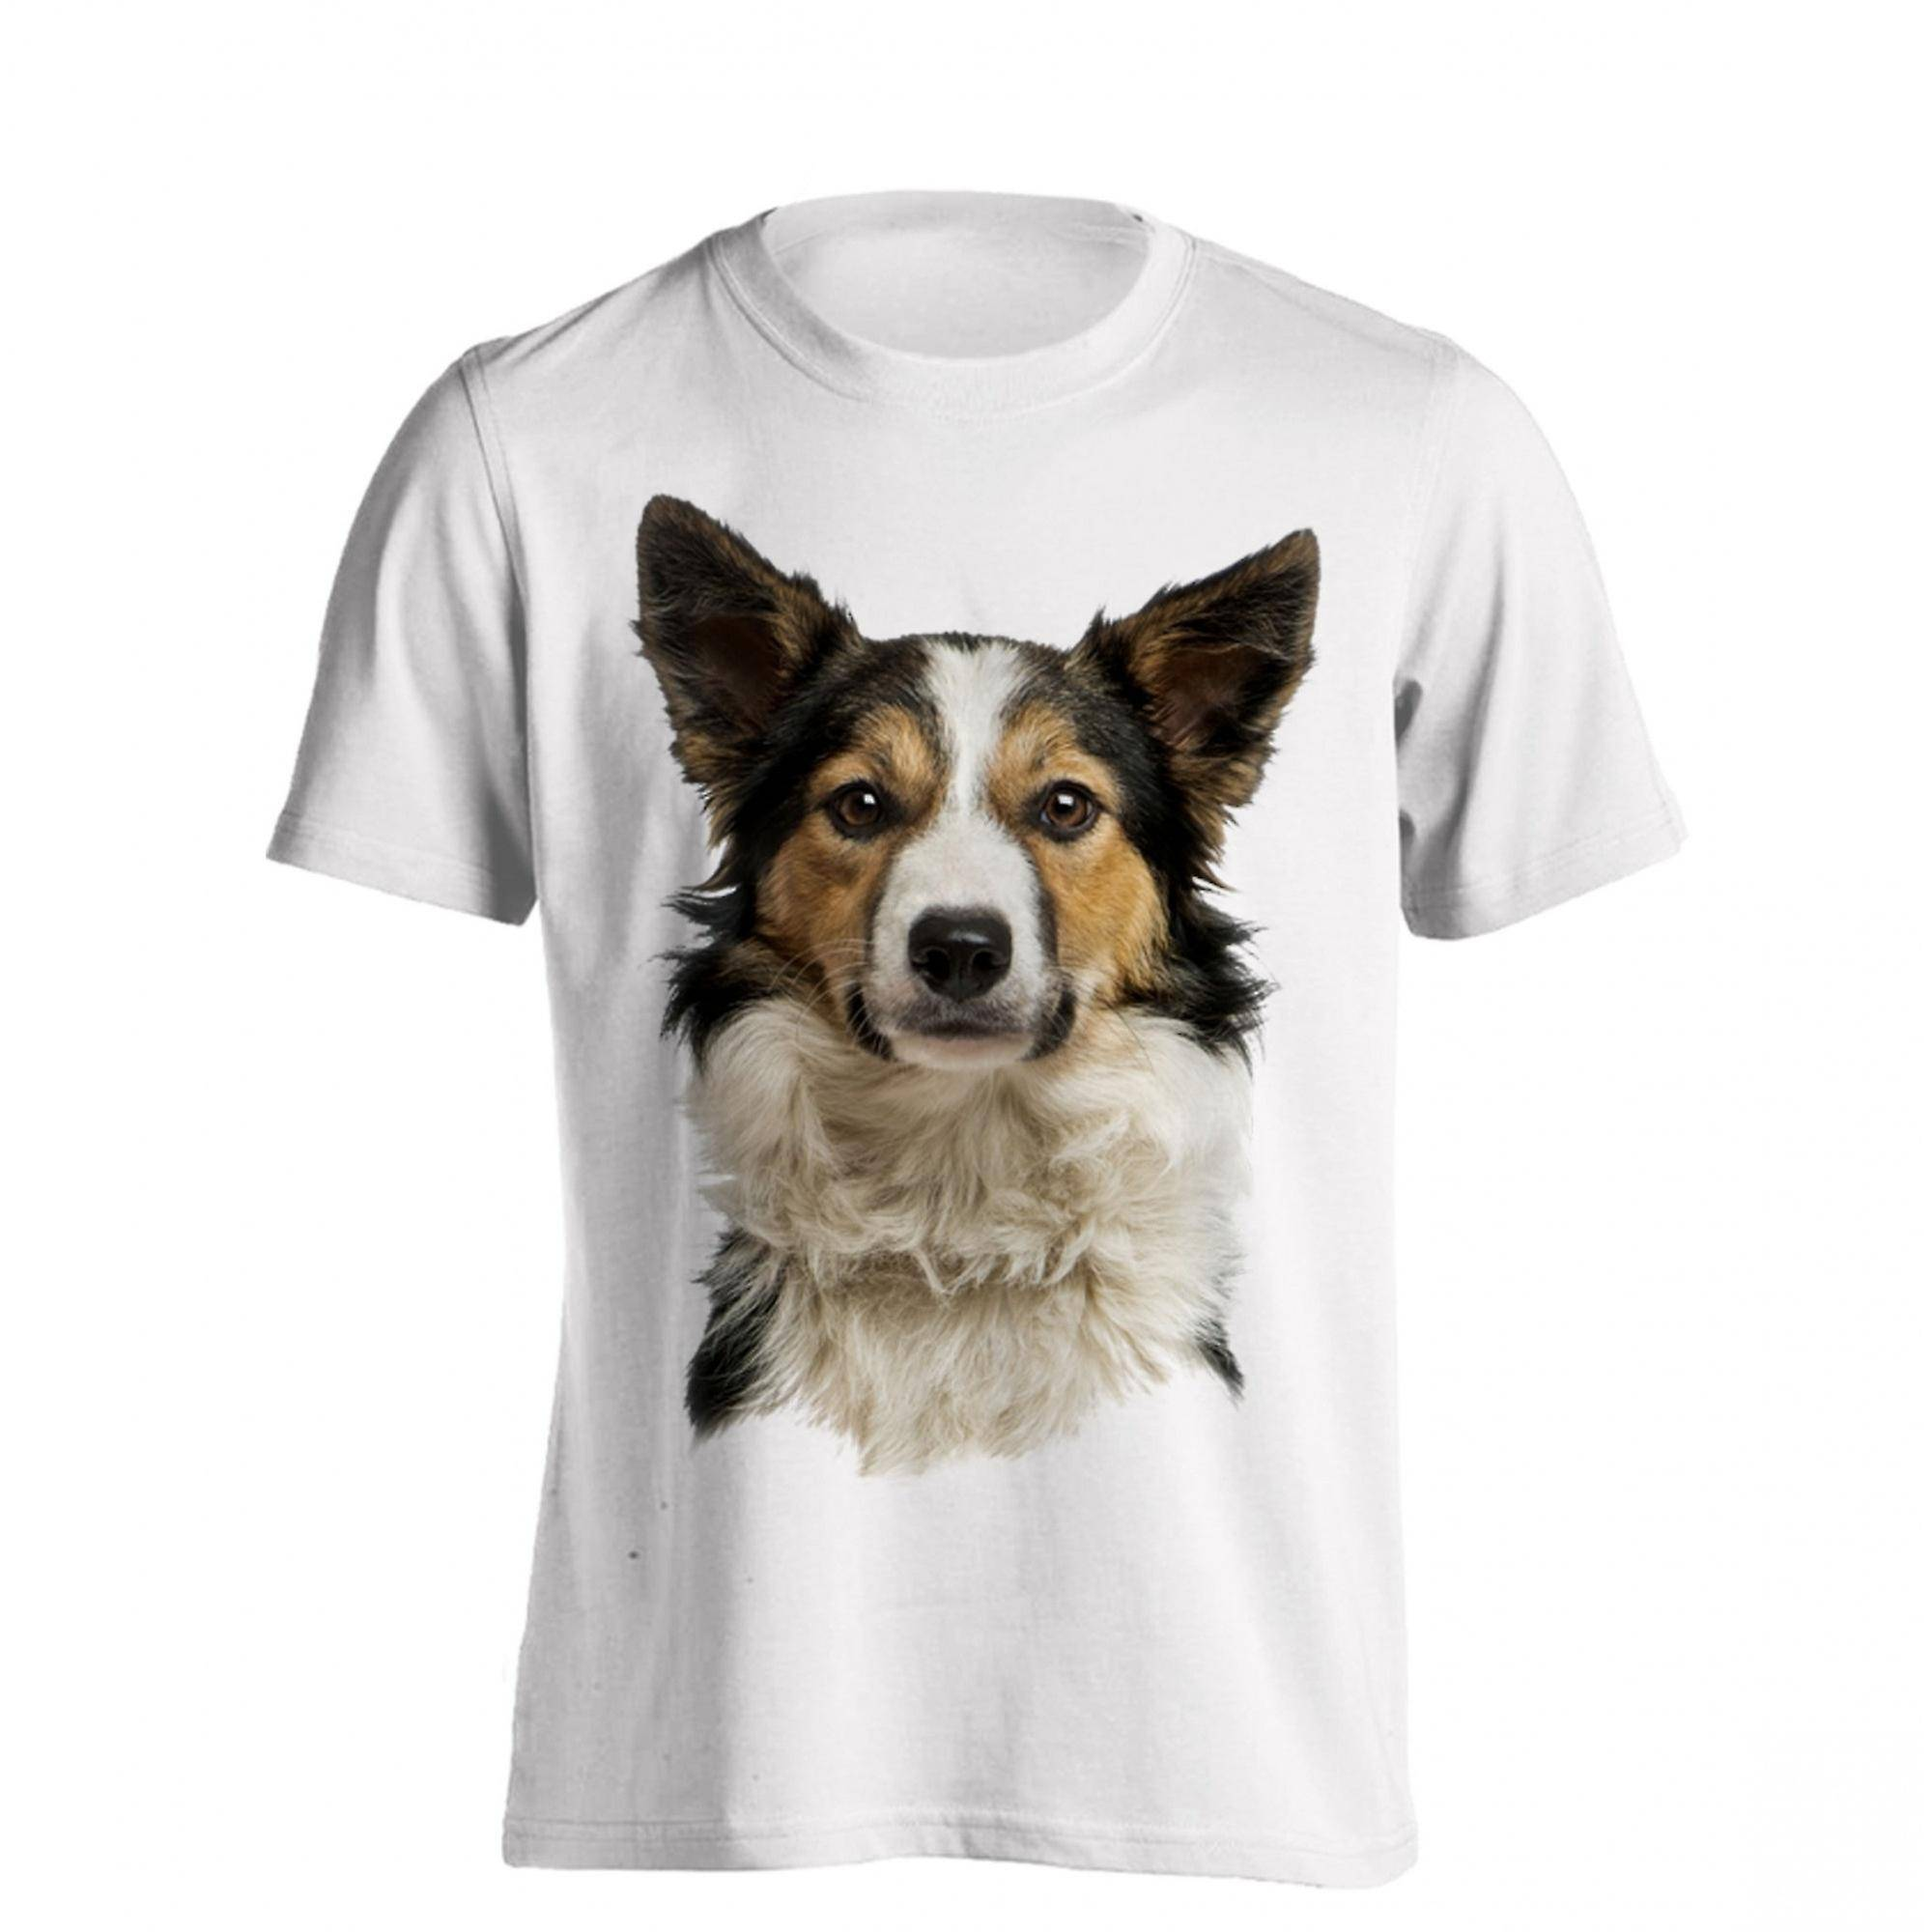 The T-Shirt Factory T-Shirt fabriken Mens bordercollie hund T-Shirt